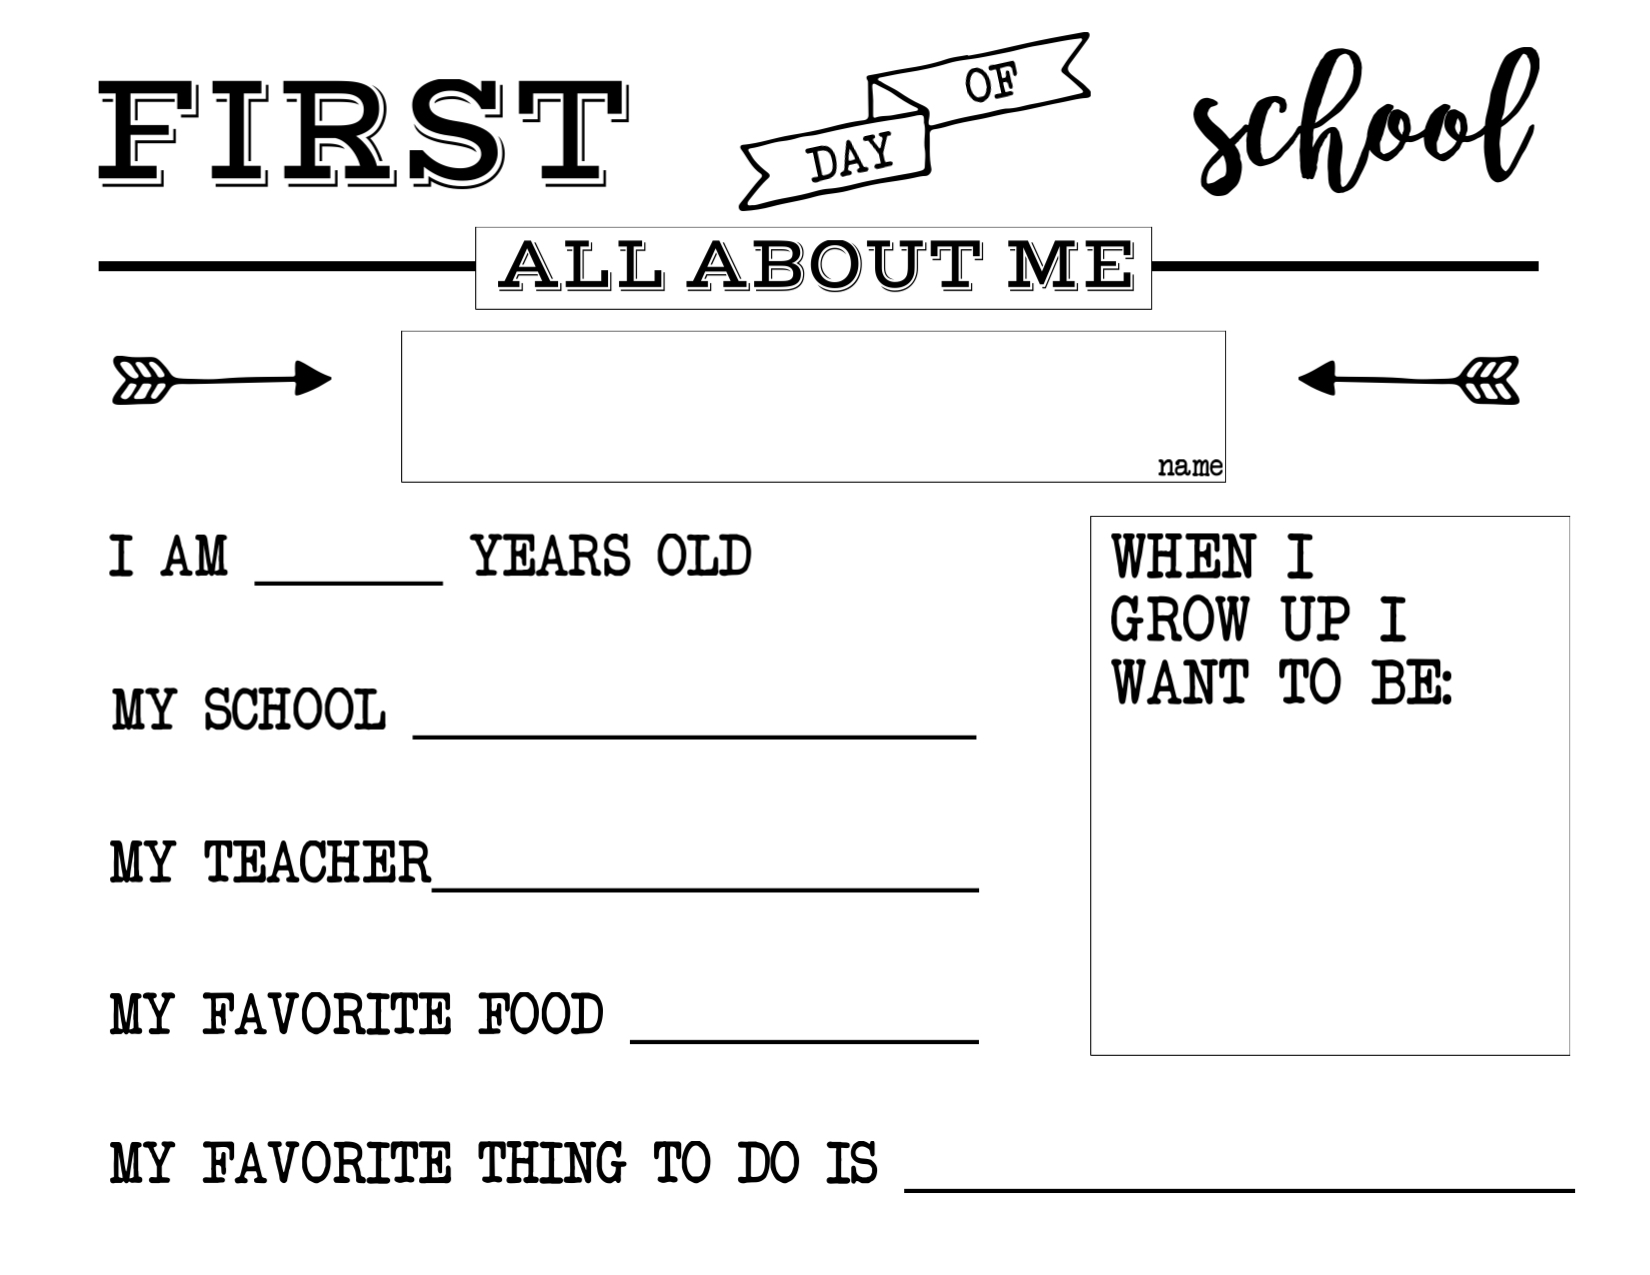 All about me paper